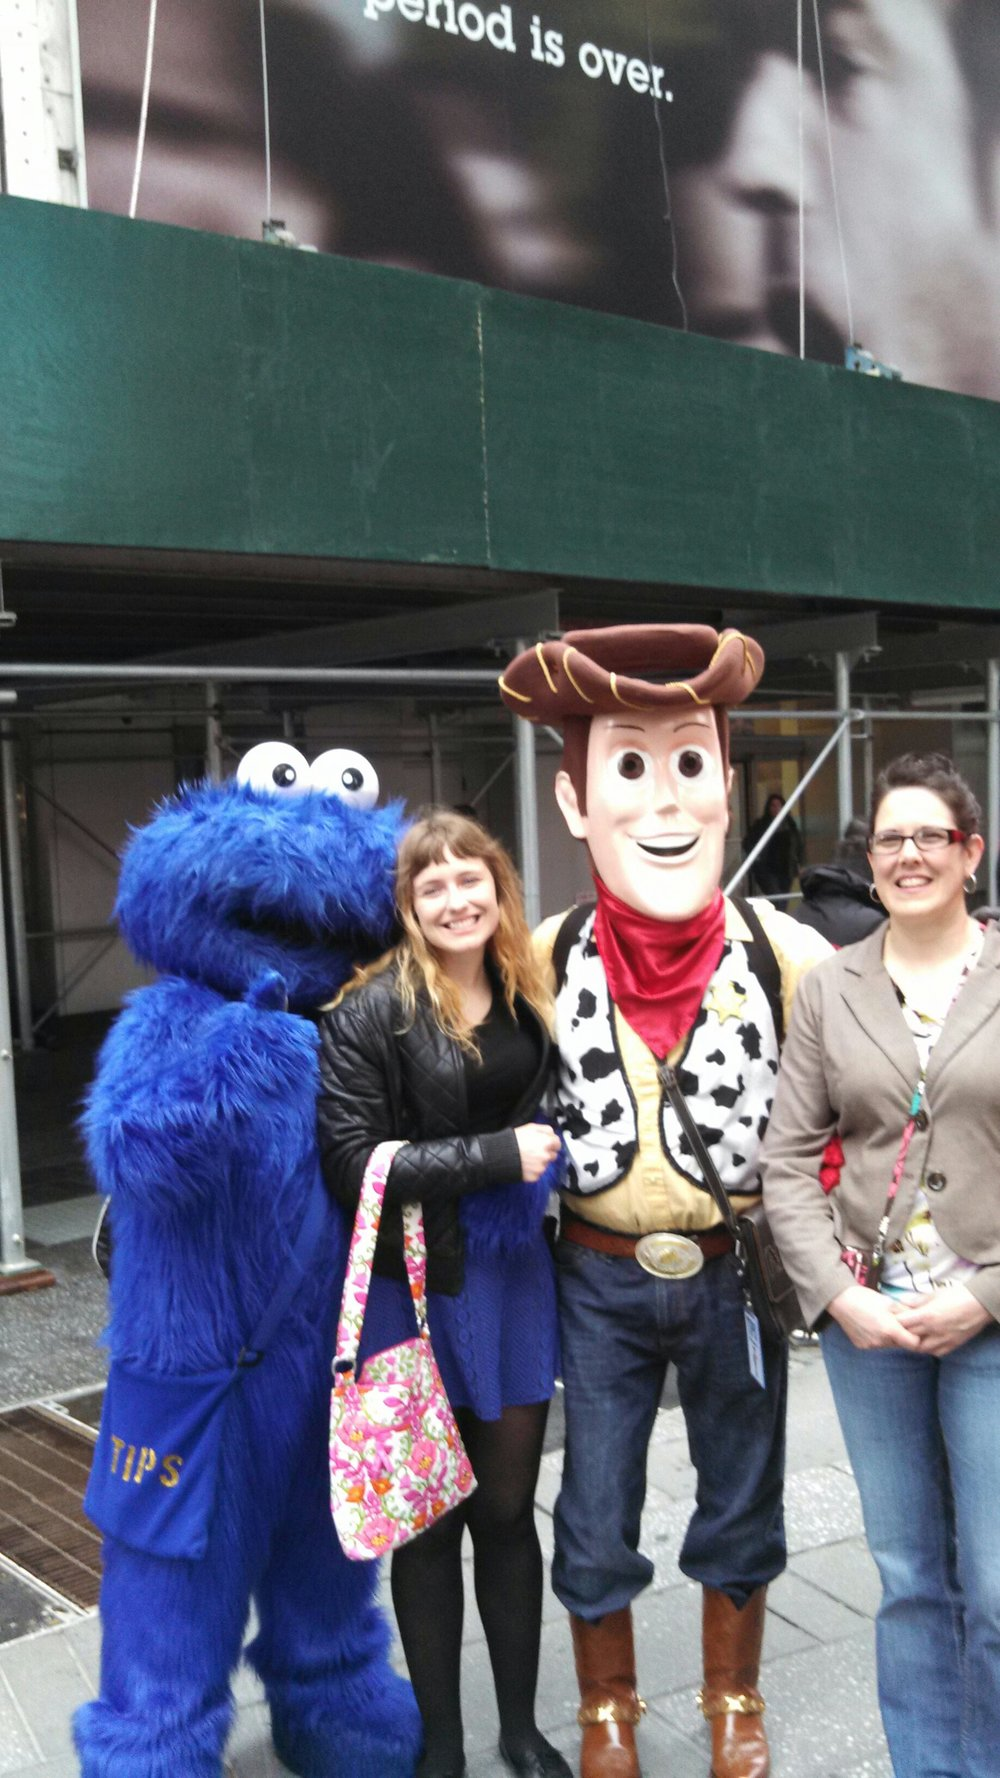 Cookie and Woody weren't the most friendly of creatures I've met in my life.